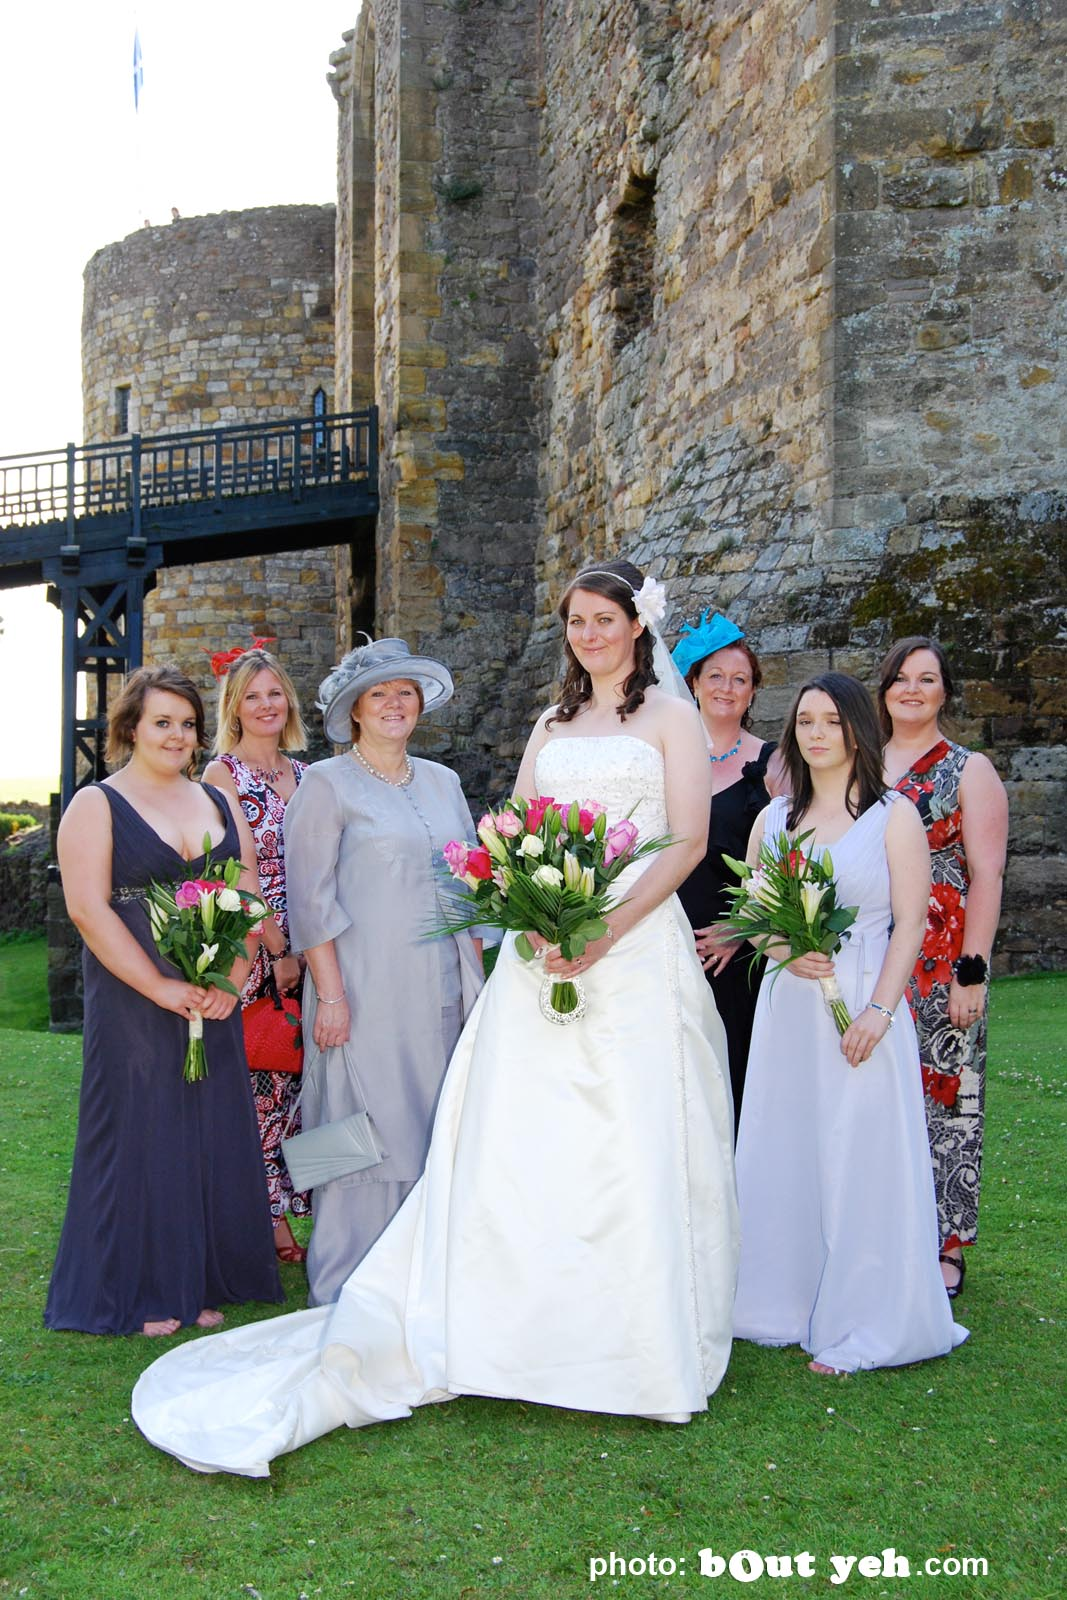 Davy and Niamh's wedding photographed by Bout Yeh wedding photographers and video services Belfast and Northern Ireland. Photo 2138